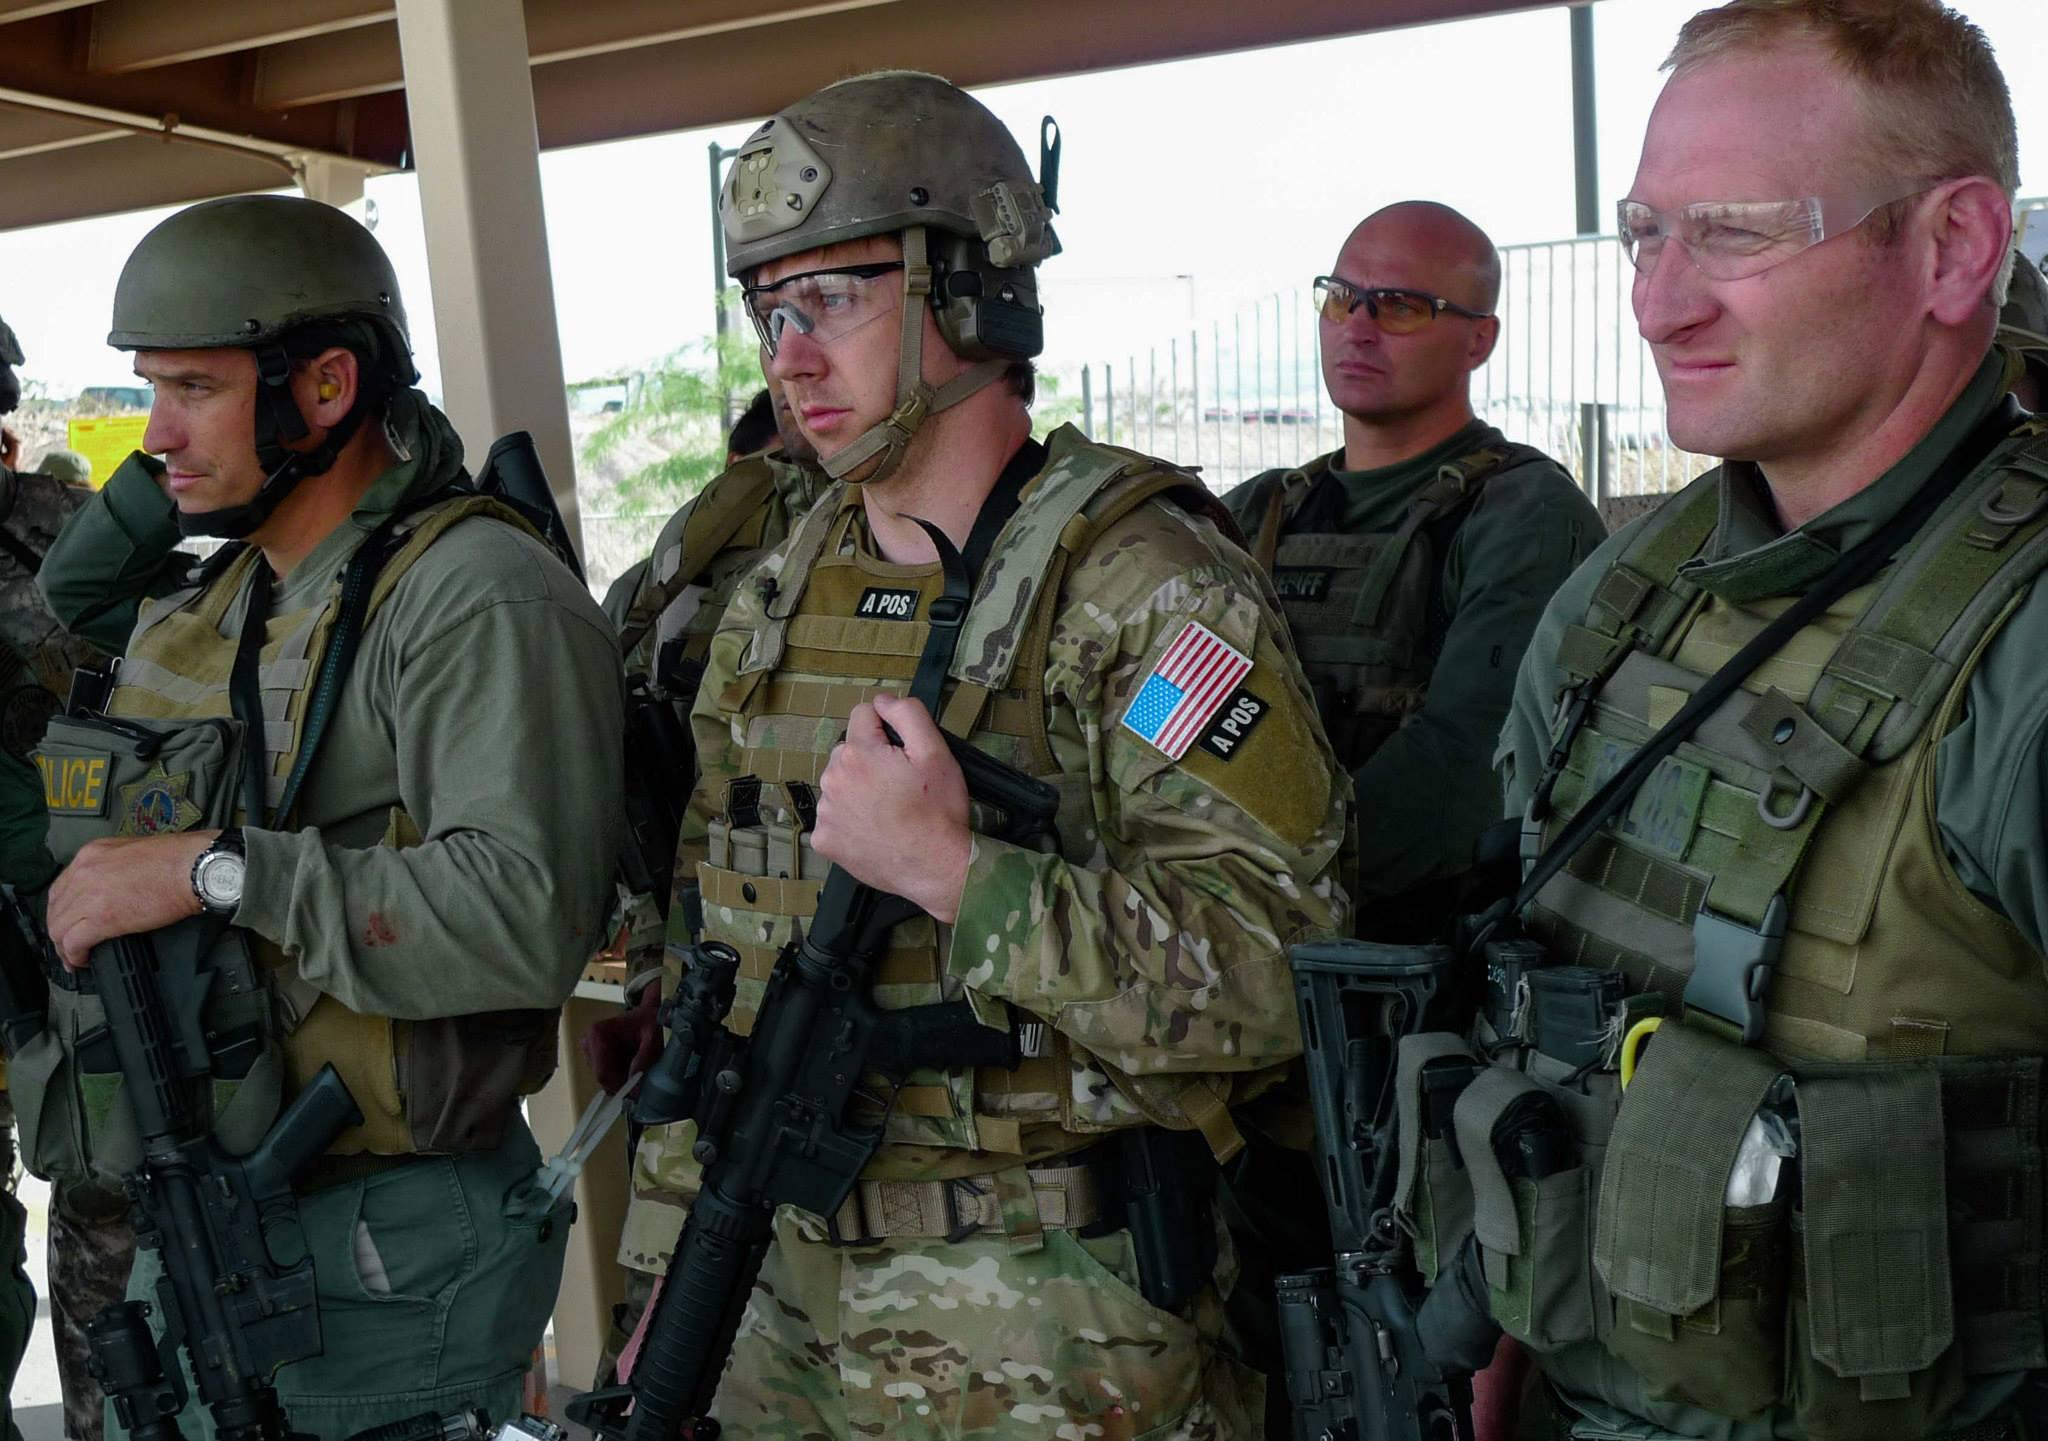 Special Operations Soldiers Share Their Stories of PTSD in New Documentary